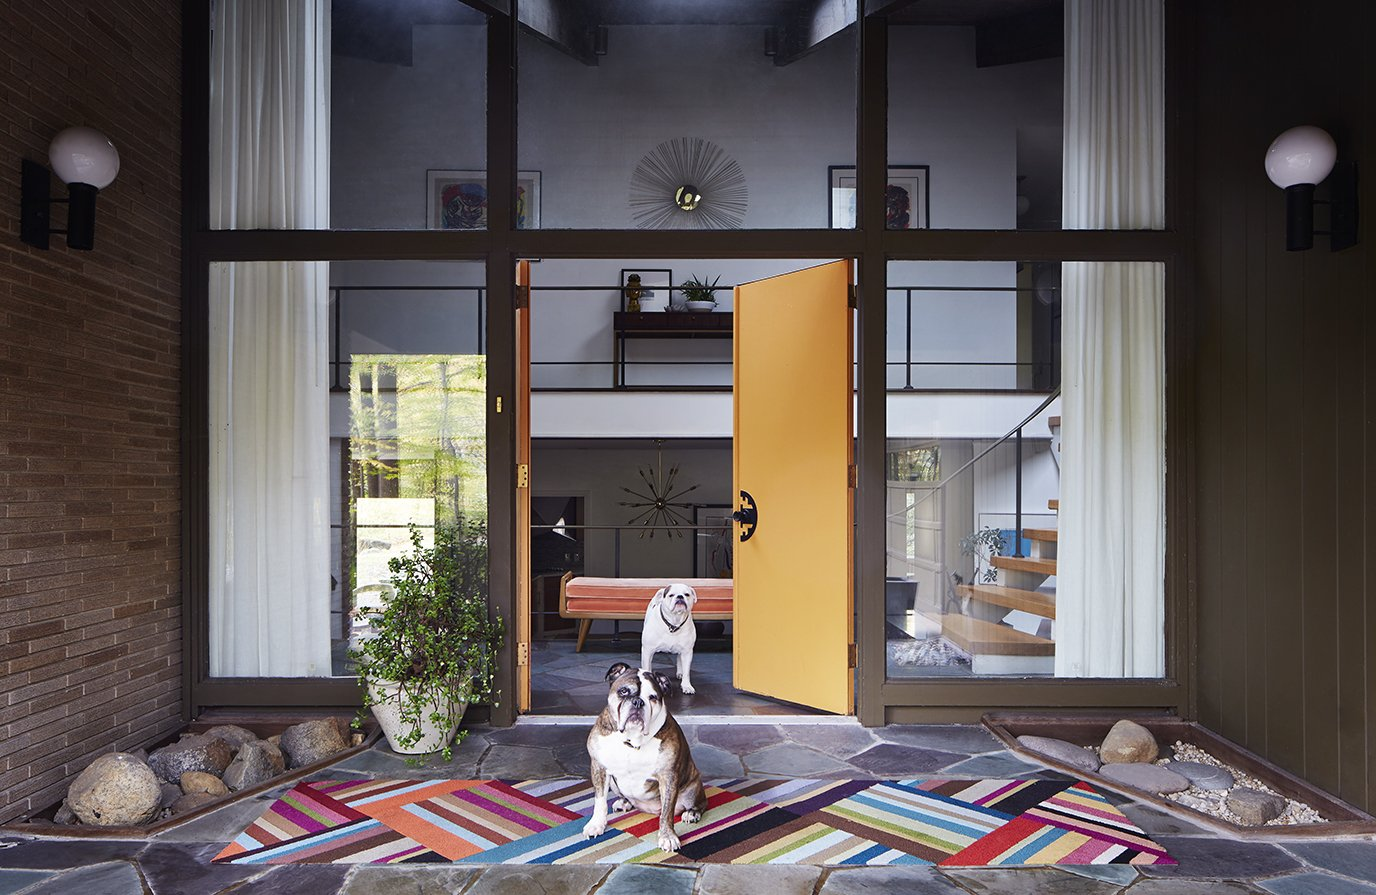 7 colors to use in your home to create a midcentury modern look with a twist